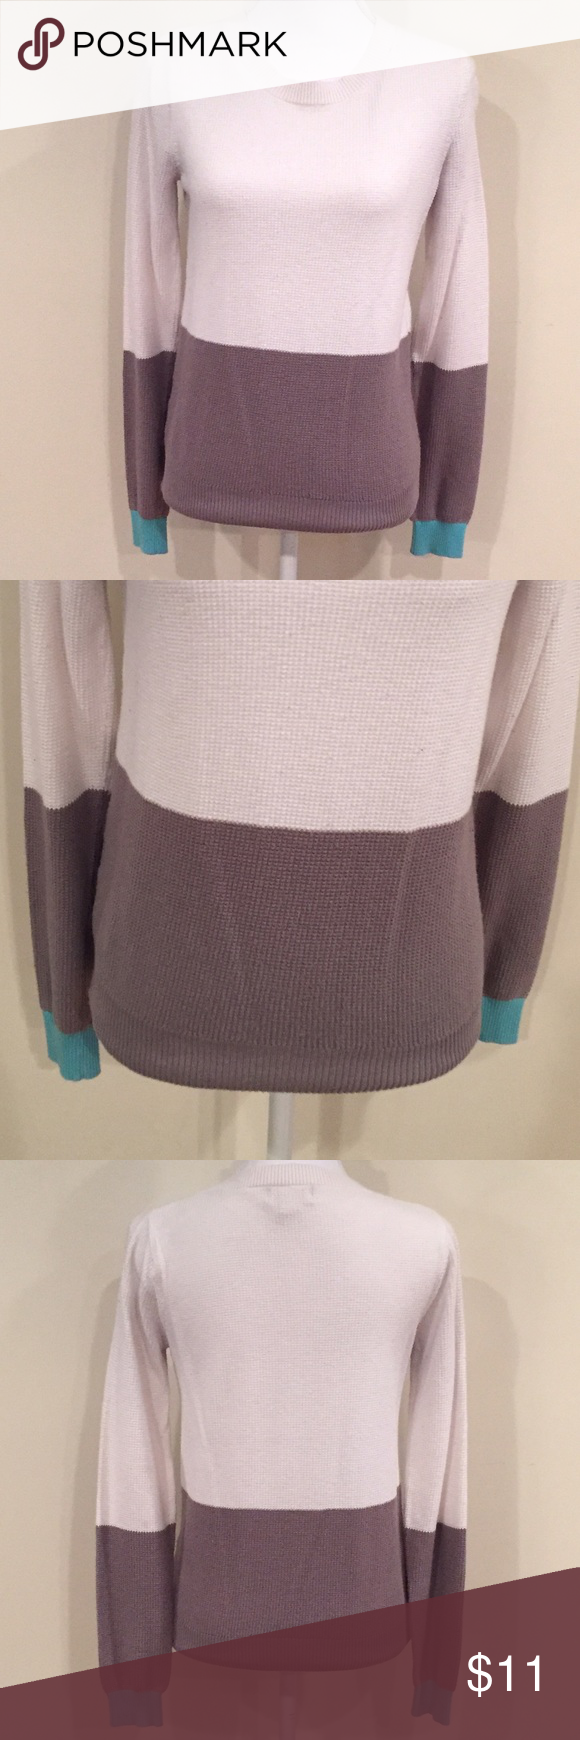 Sweater White, Gray & Teal Sweater •size medium •bottom of sleeves are teal •tags have been removed  Only worn a handful of times, in good condition✨🎀 Sweaters